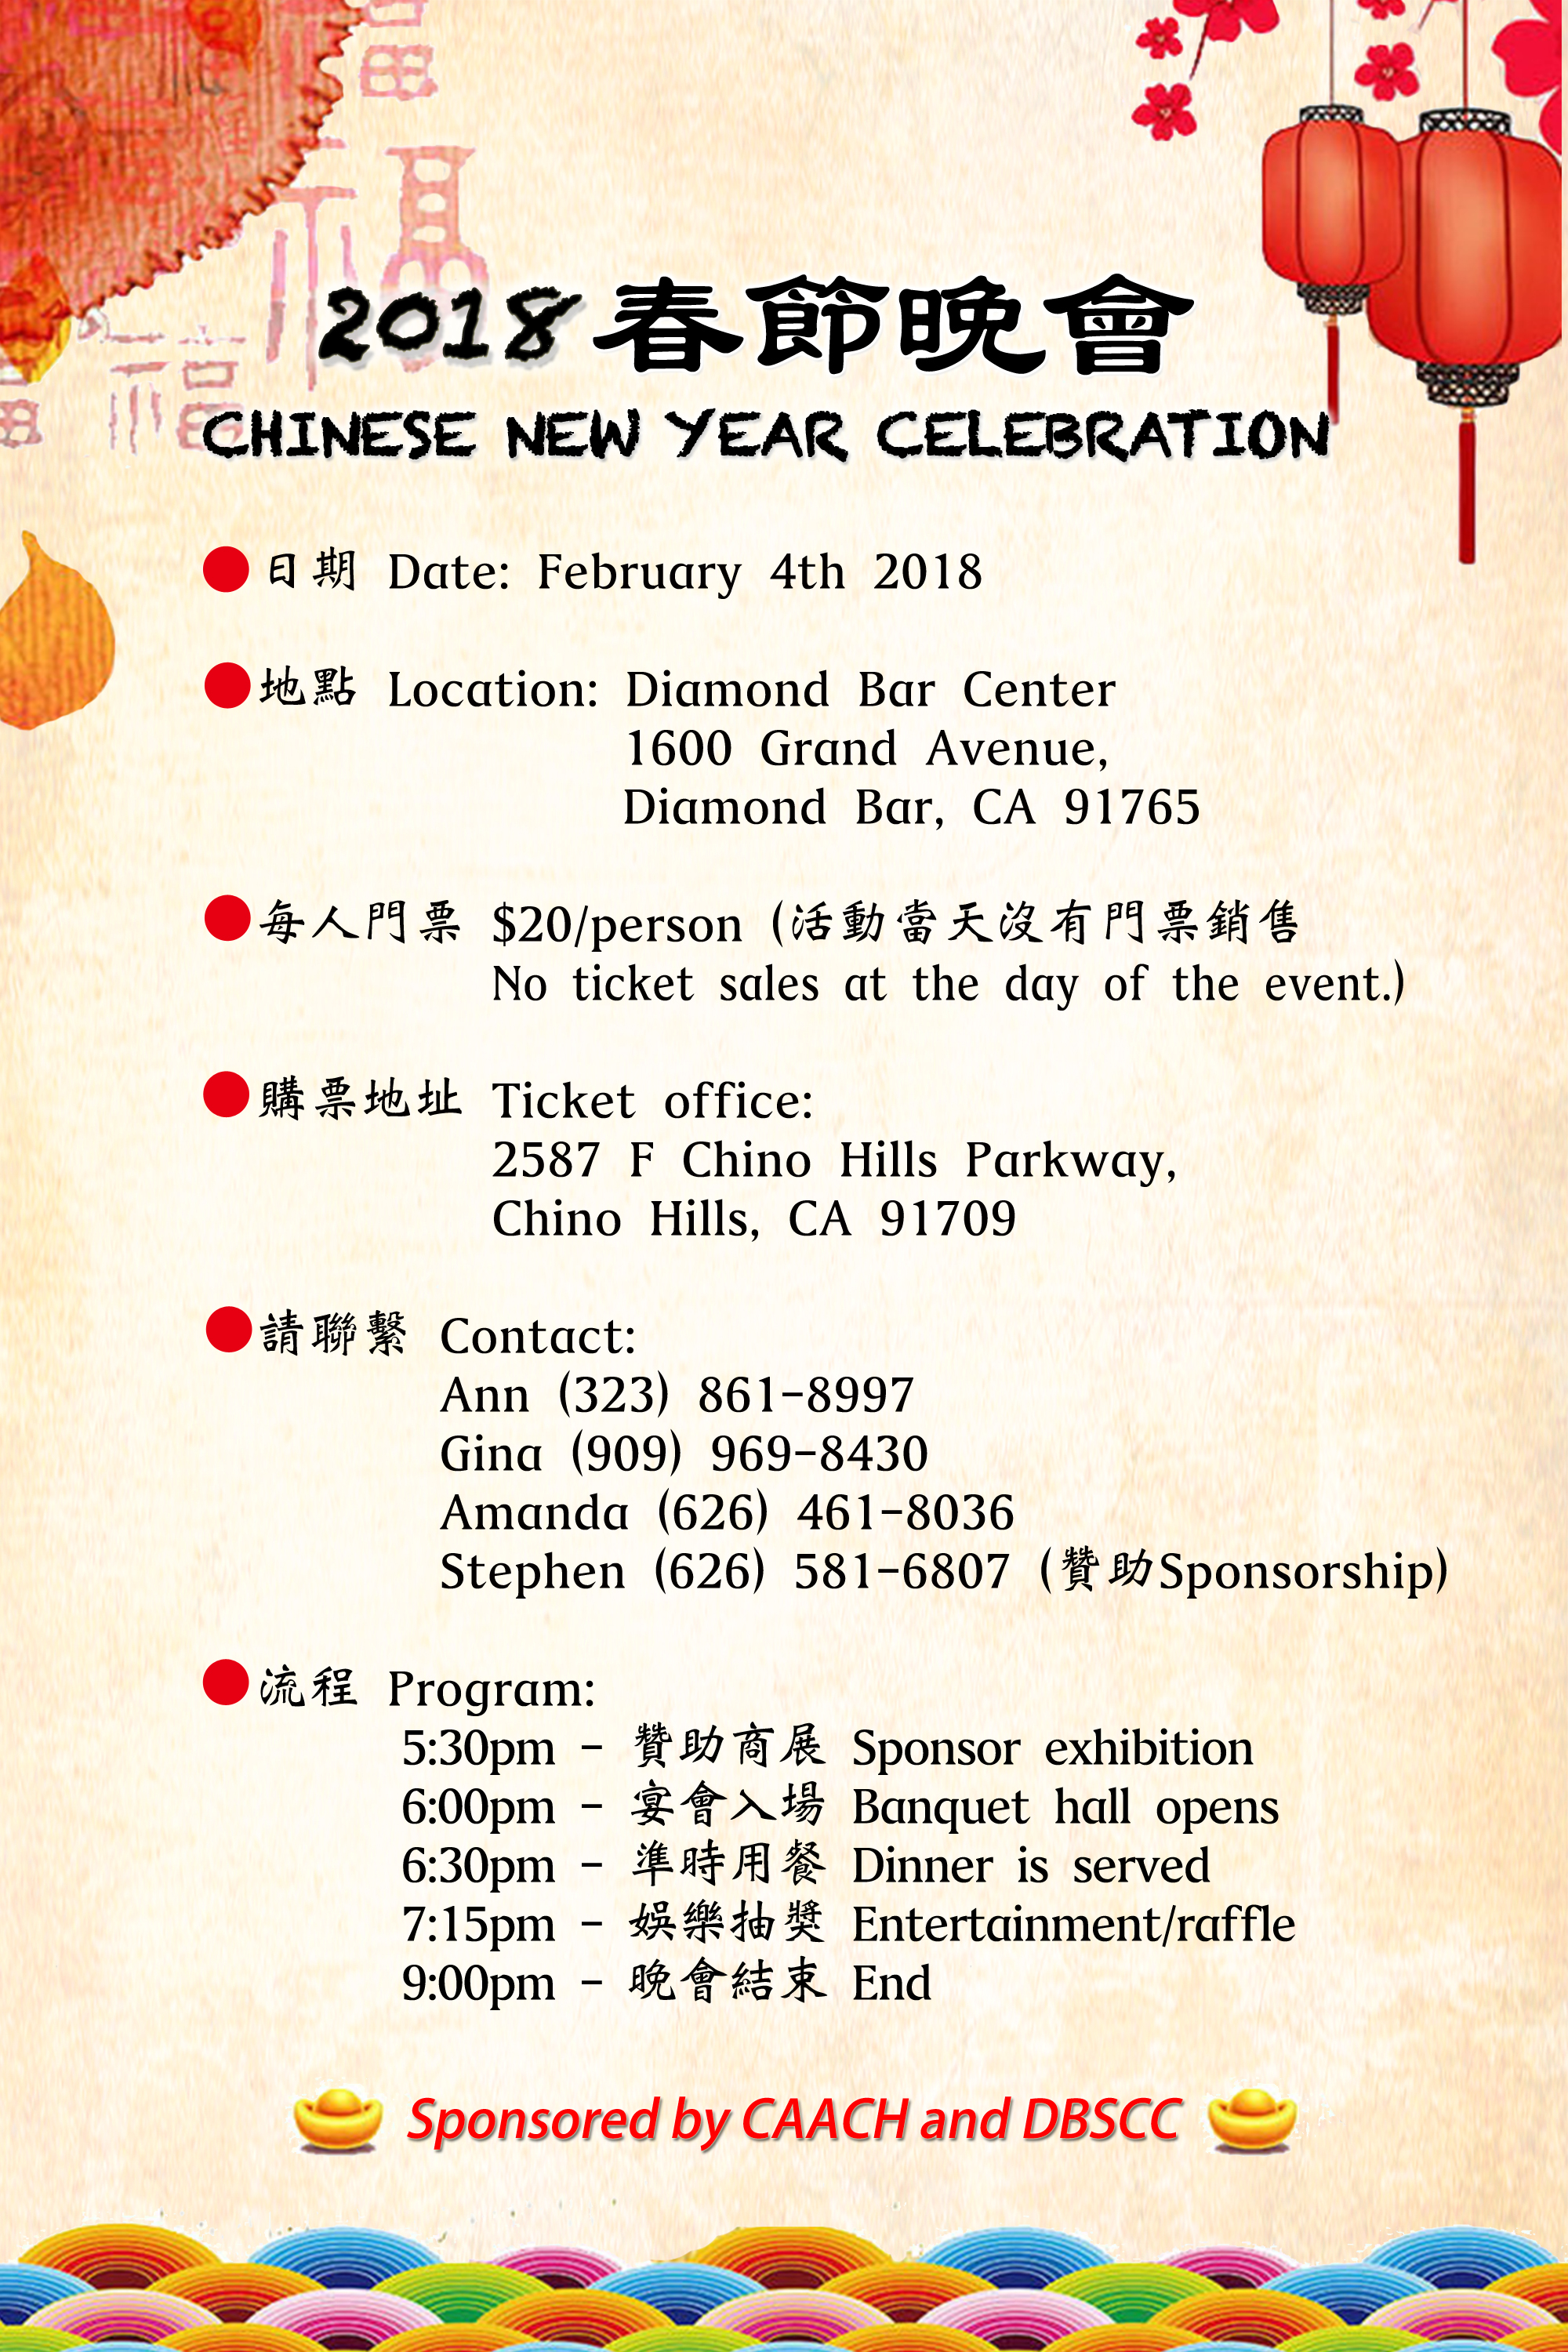 CNY 2017 flyer high resolution